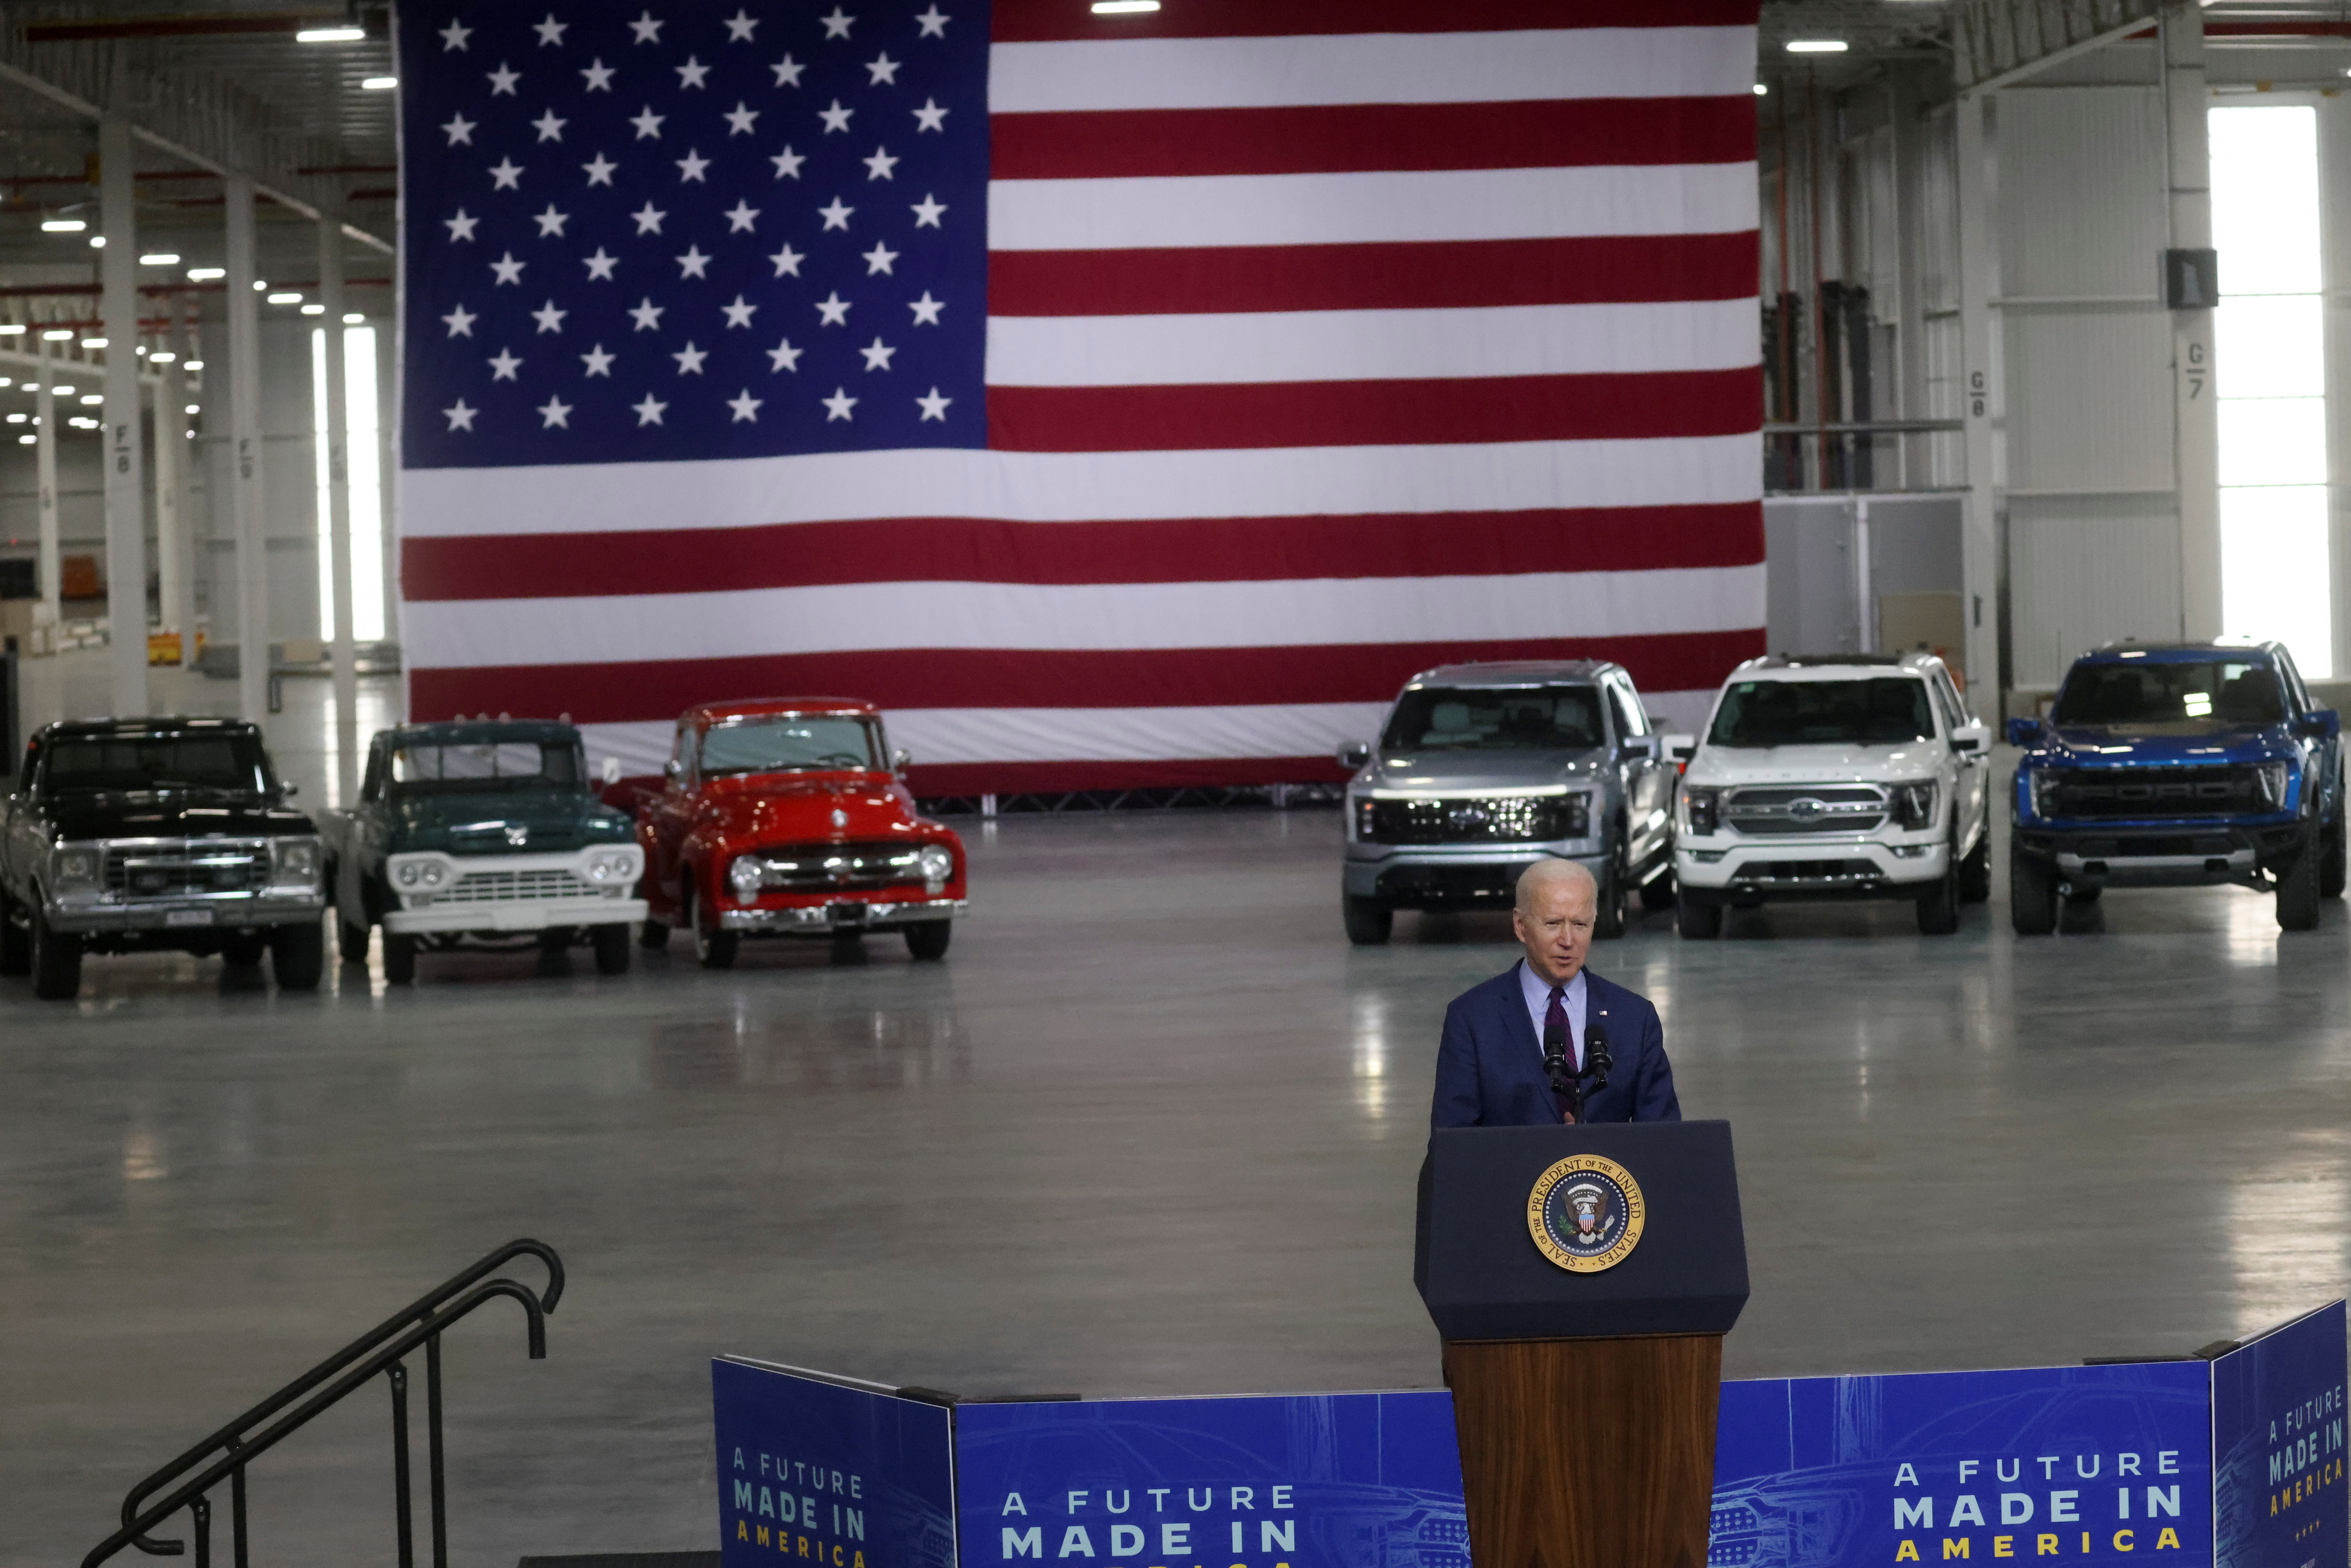 U.S. President Joe Biden delivers remarks after touring Ford Rouge Electric Vehicle Center in Dearborn, Michigan, U.S., May 18, 2021.  REUTERS/Leah Millis.